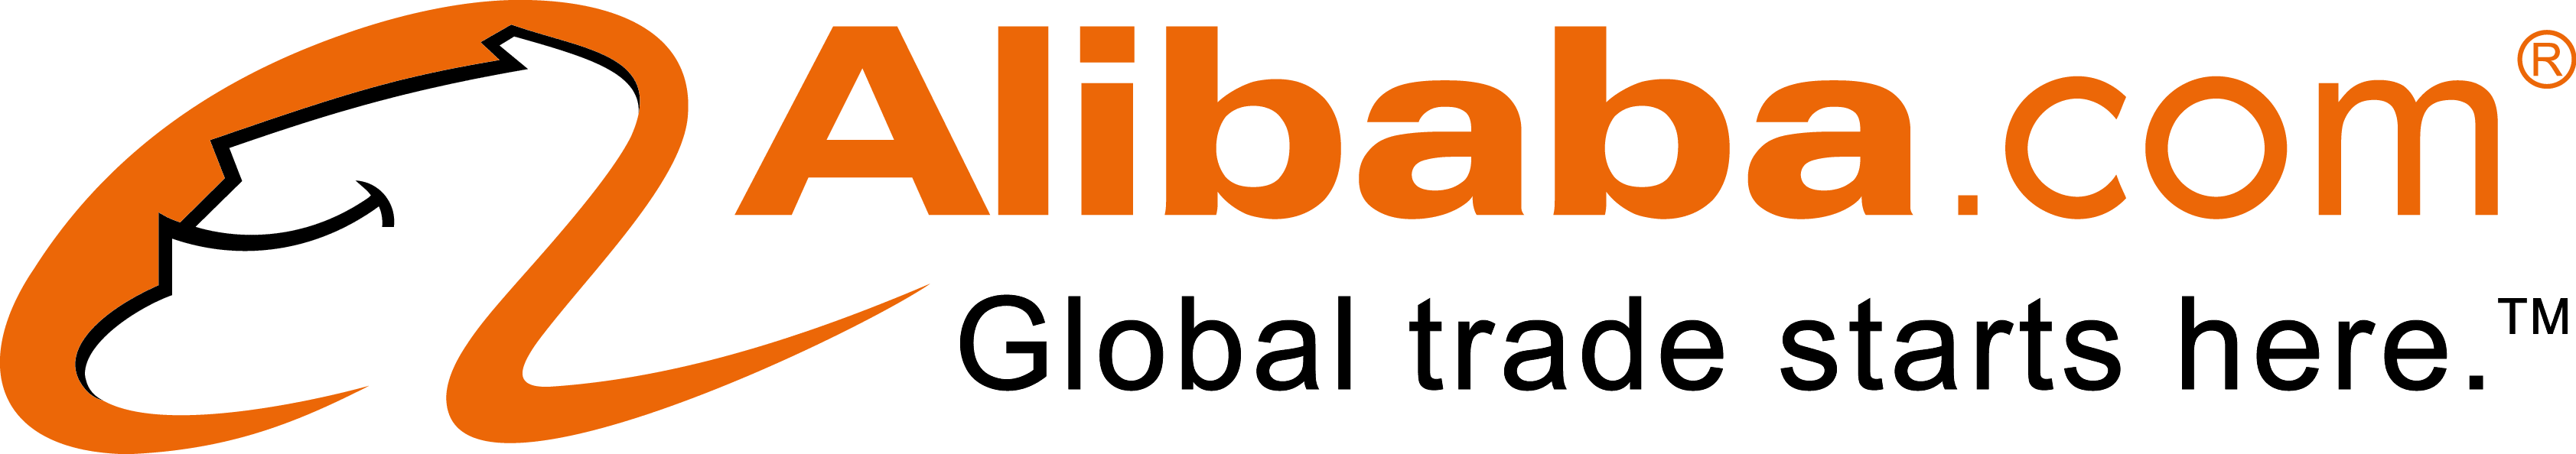 Alibaba.com Logo [EPS File] Vector EPS Free Download, Logo, Icons, Brand Emblems